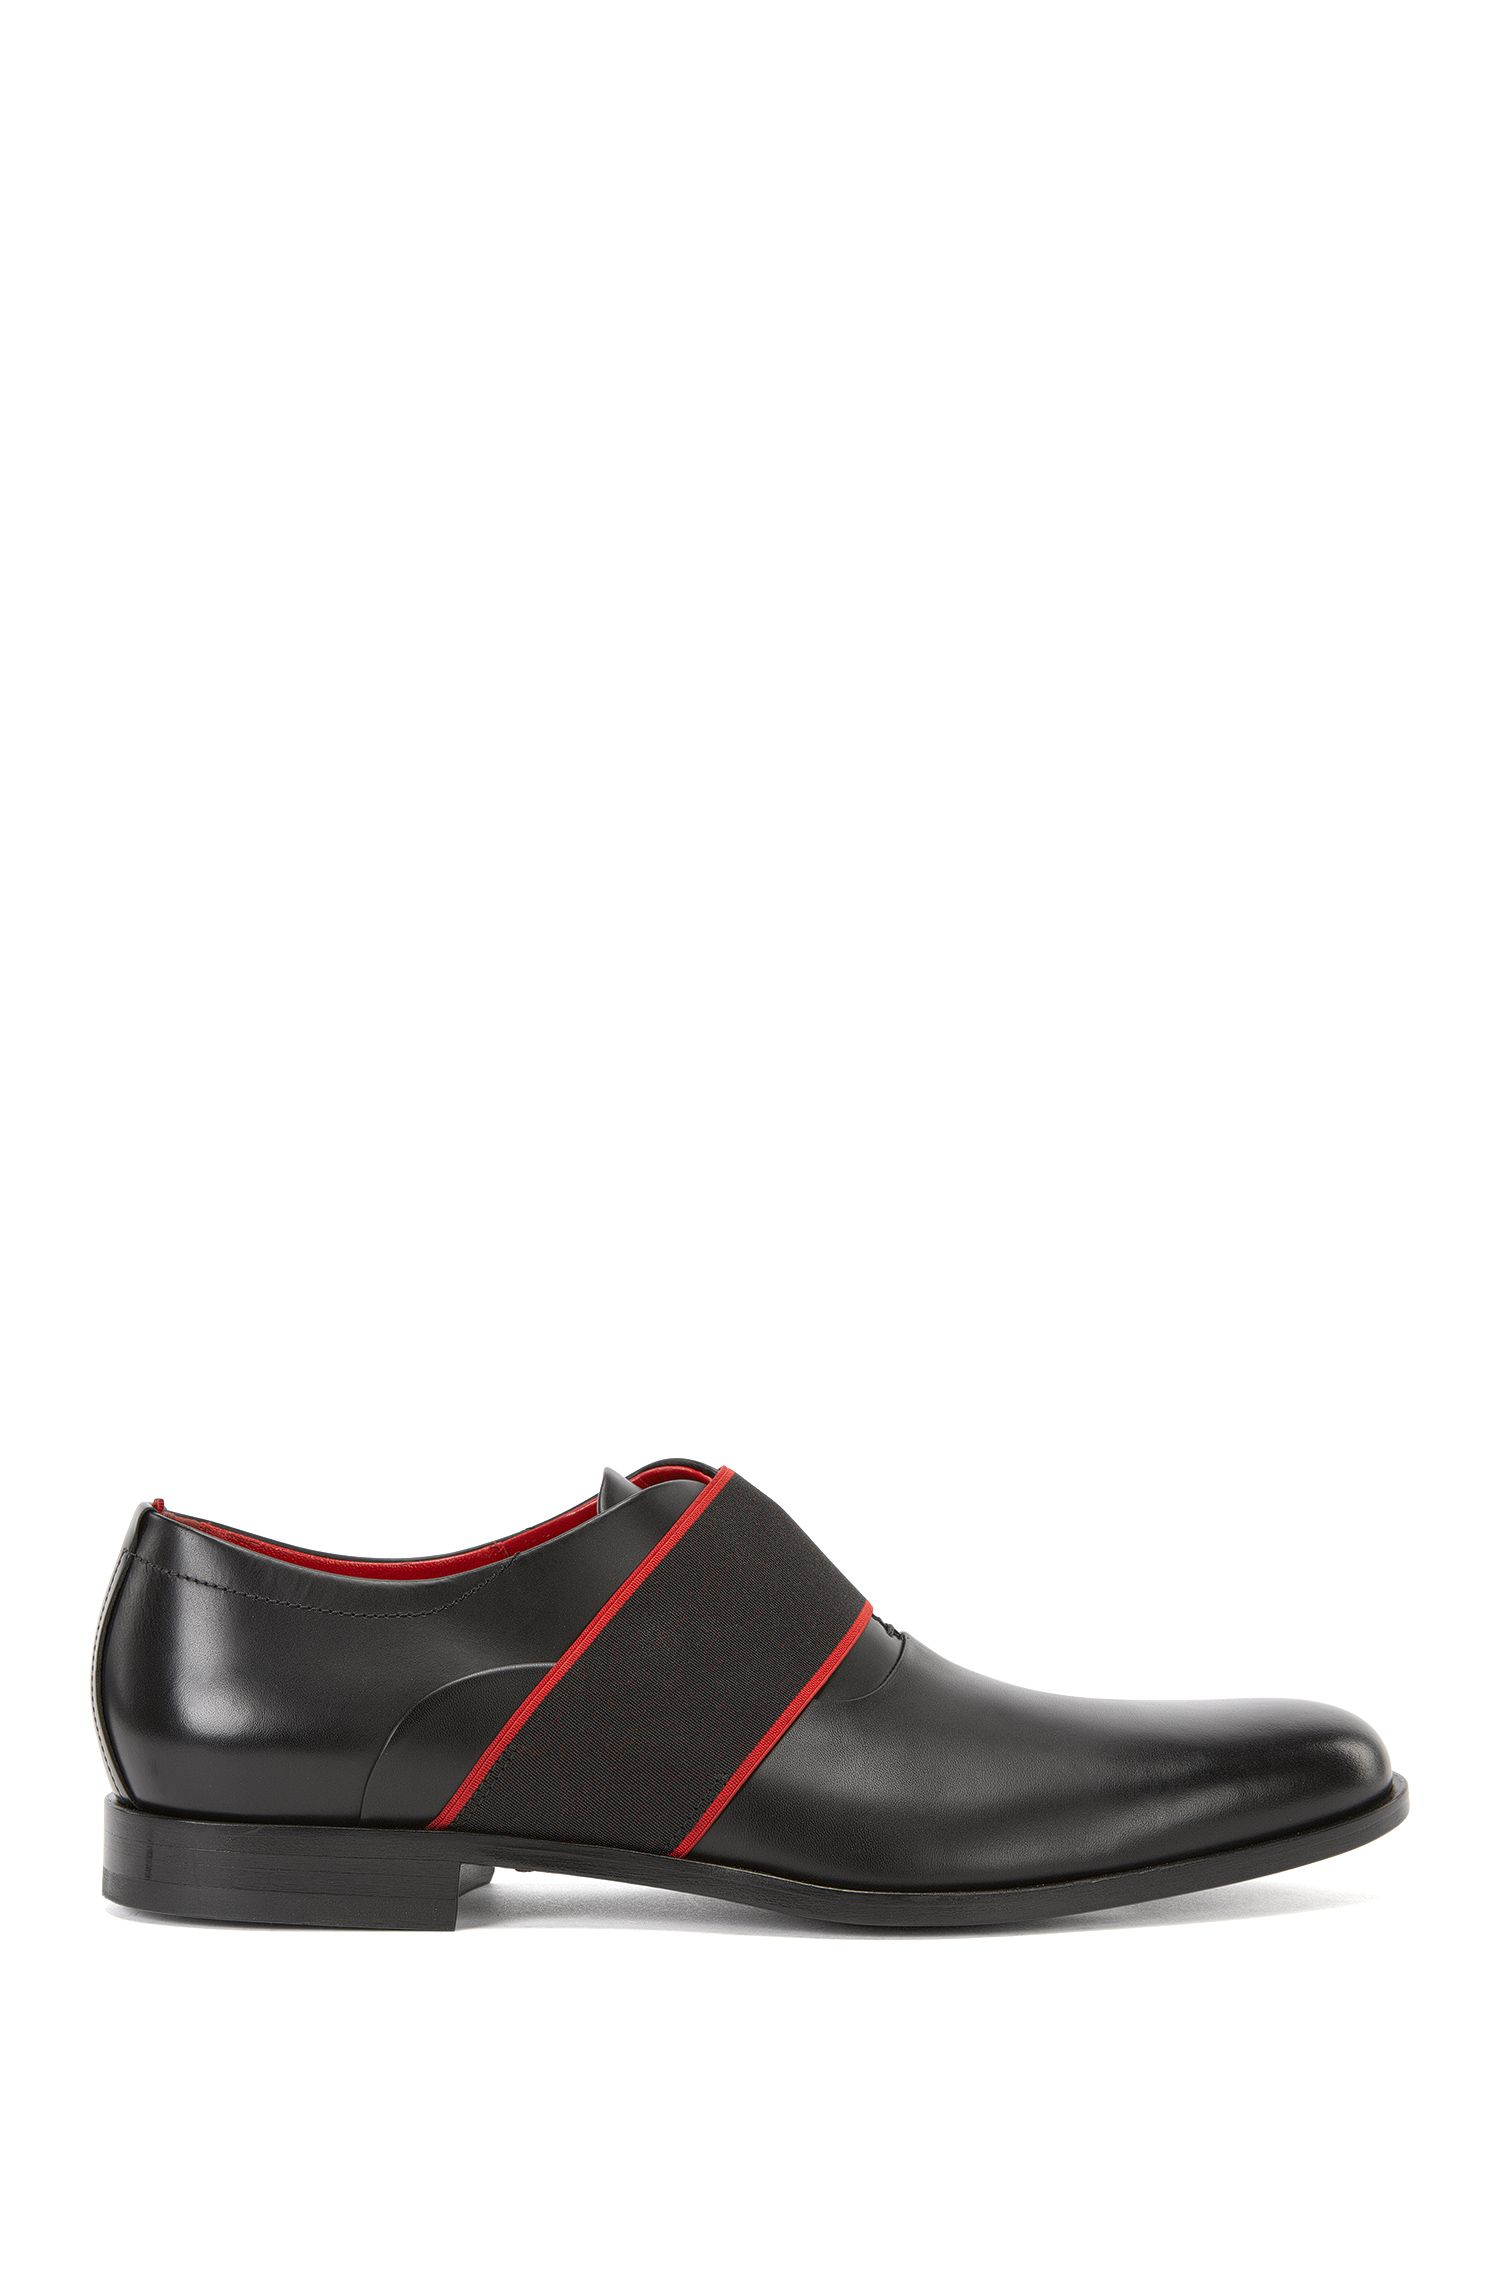 Leather Slip-On Dress Shoe | Sigma Slon Tp